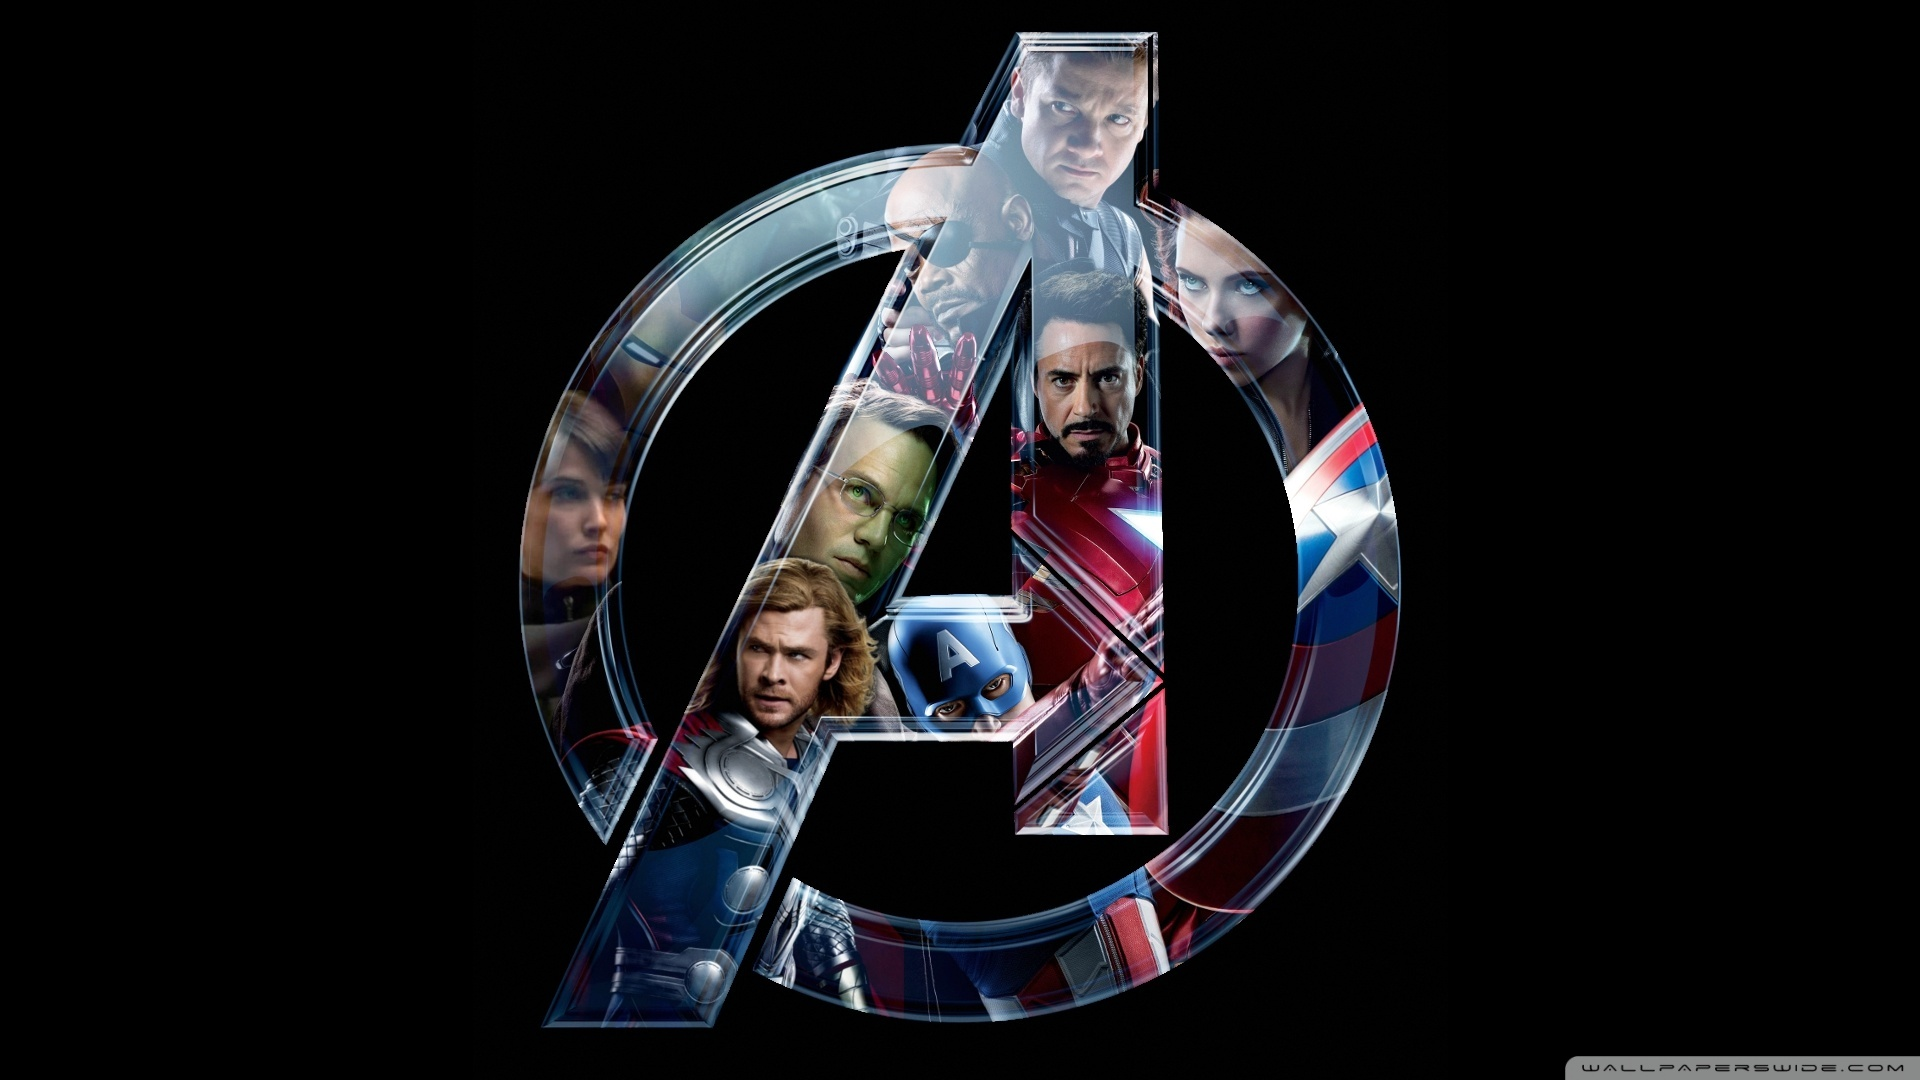 Avengers Wallpaper The Avengers Wallpapers HD Avengers Desktop 1920x1080